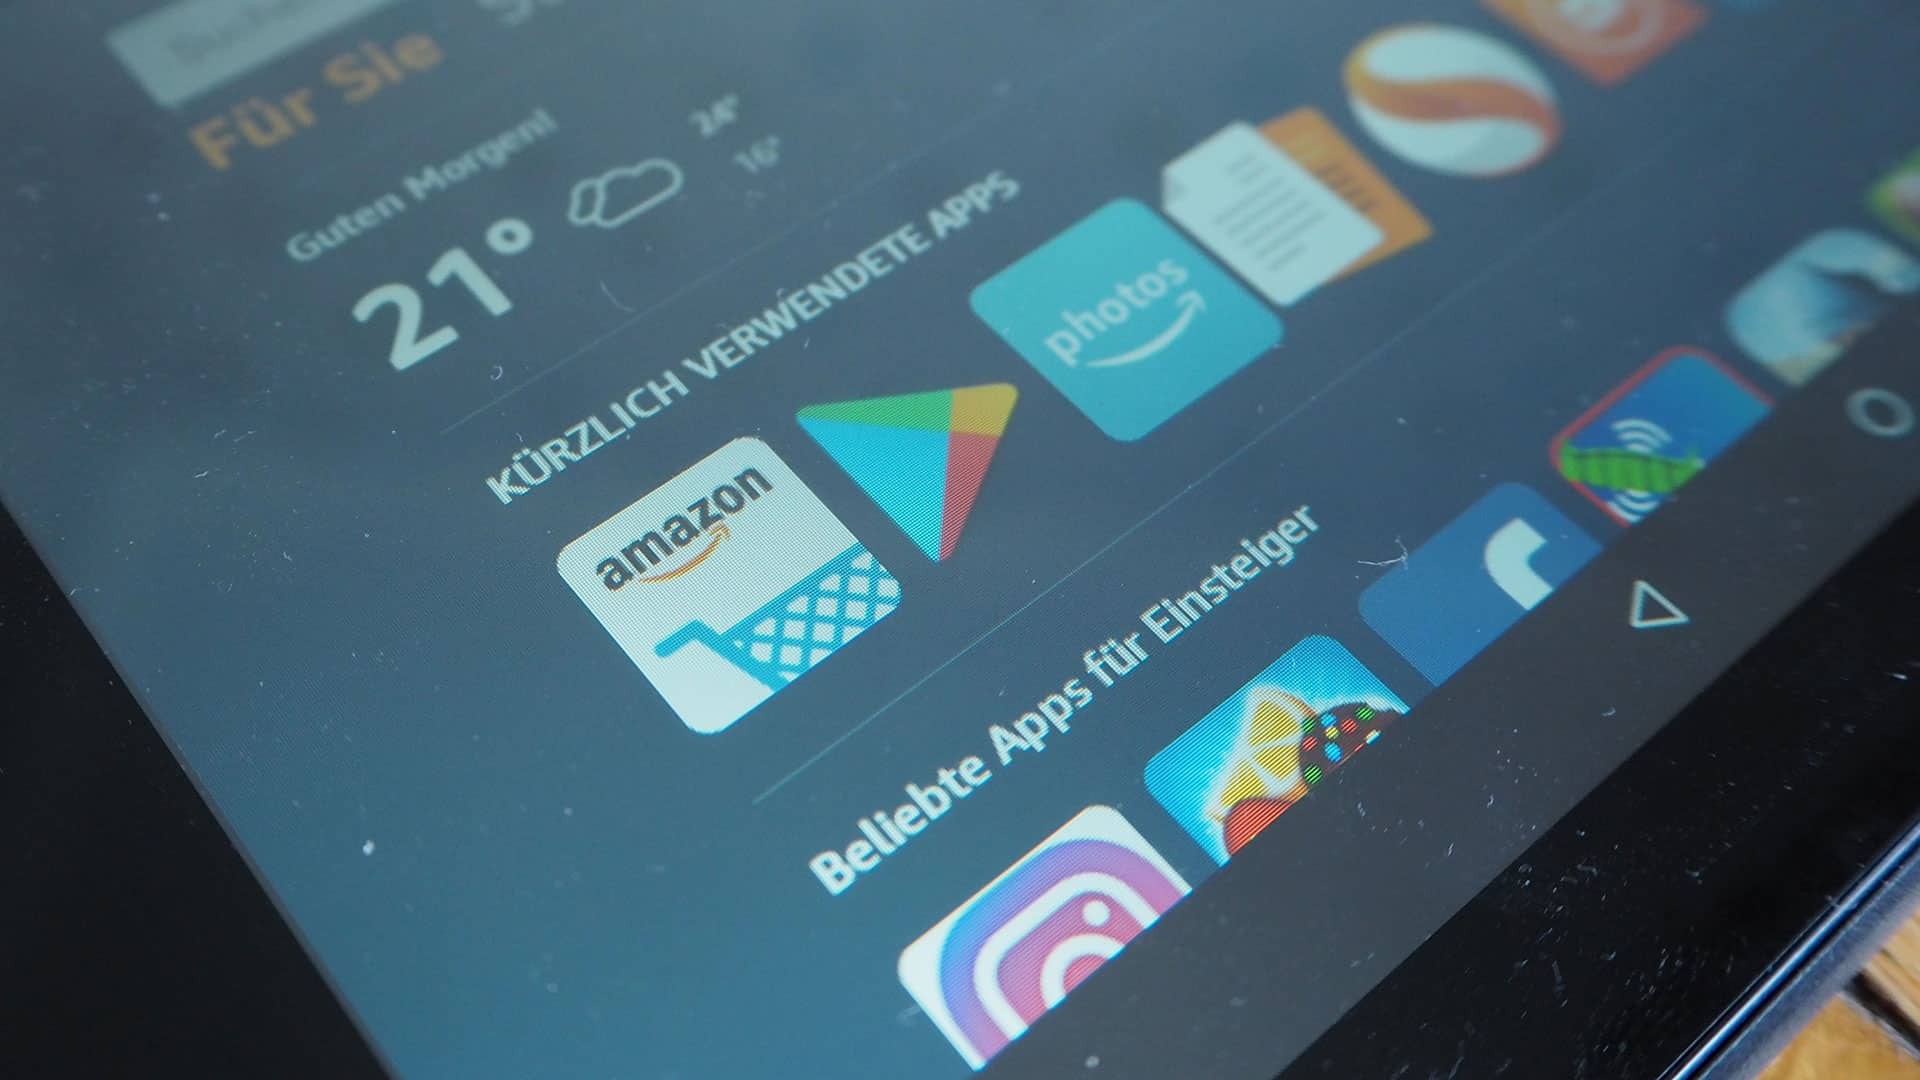 Google Play Store auf dem Amazon Fire-Tablet installieren